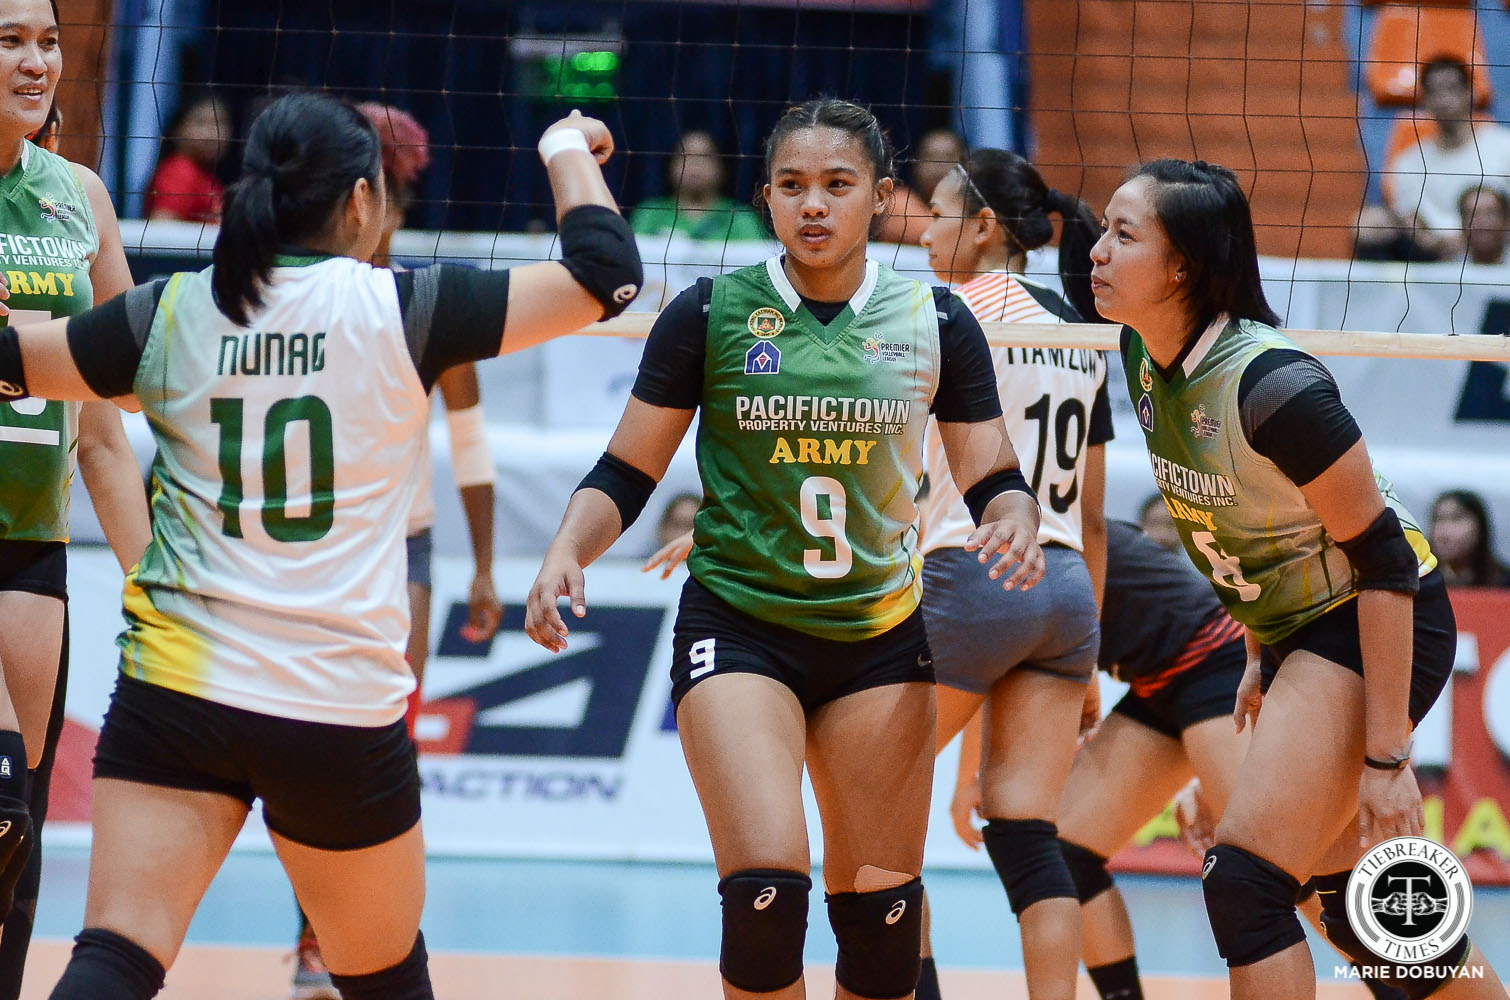 Tiebreaker Times PacificTown-Army ends first round at solo third, outlasts BanKo News PVL Volleyball  Tin Agno Perlas Lady Spikers Pacific Town-Army Lady Troopers Olena Lymareva-Flink Nicole Tiamzon Kungfu Reyes Kia Bright Kathy Bersola Jenelle Jordan Jem Gutierrez Apichat Kongsaiwat Alina Bicar 2019 PVL Season 2019 PVL Reinforced Conference